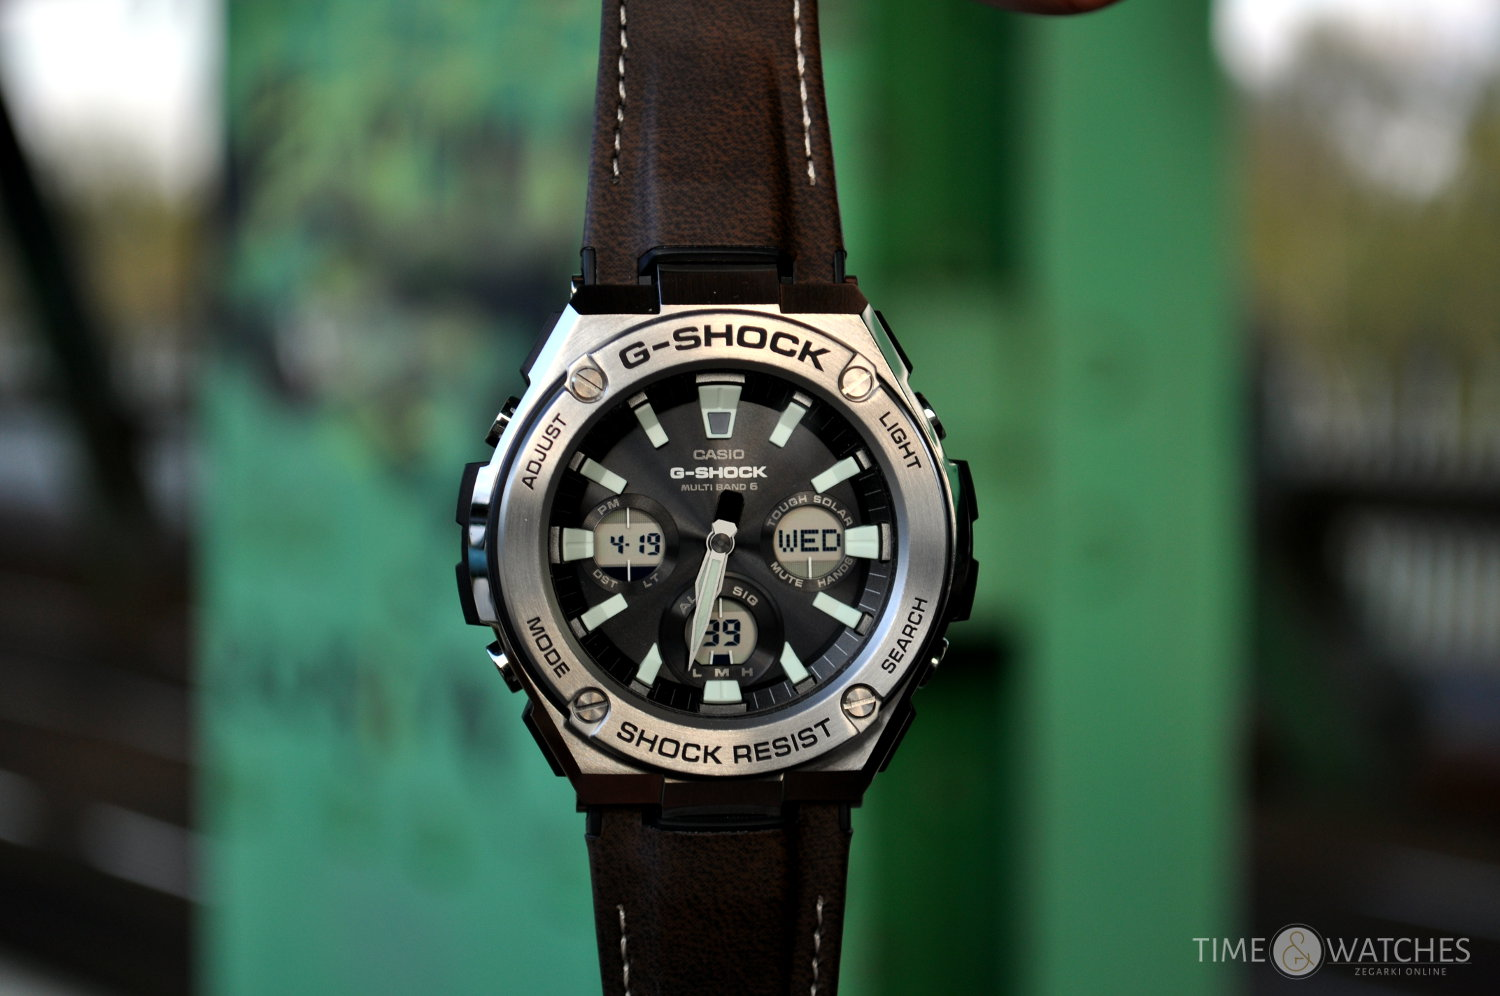 CASIO G-SHOCK TOUGH LEATHER - NOWA SKÓRA G-SHOCK'ÓW